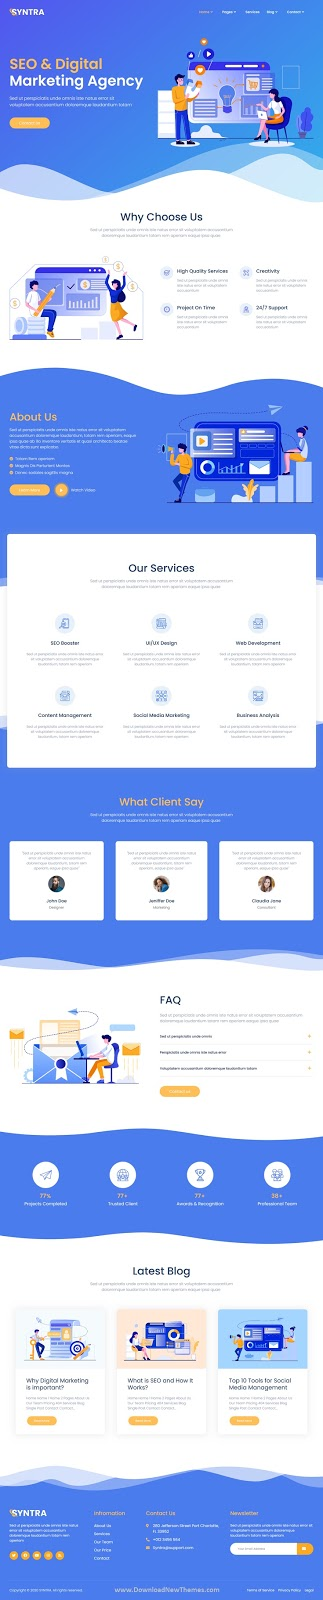 SEO & Digital Marketing Agency Template Kit